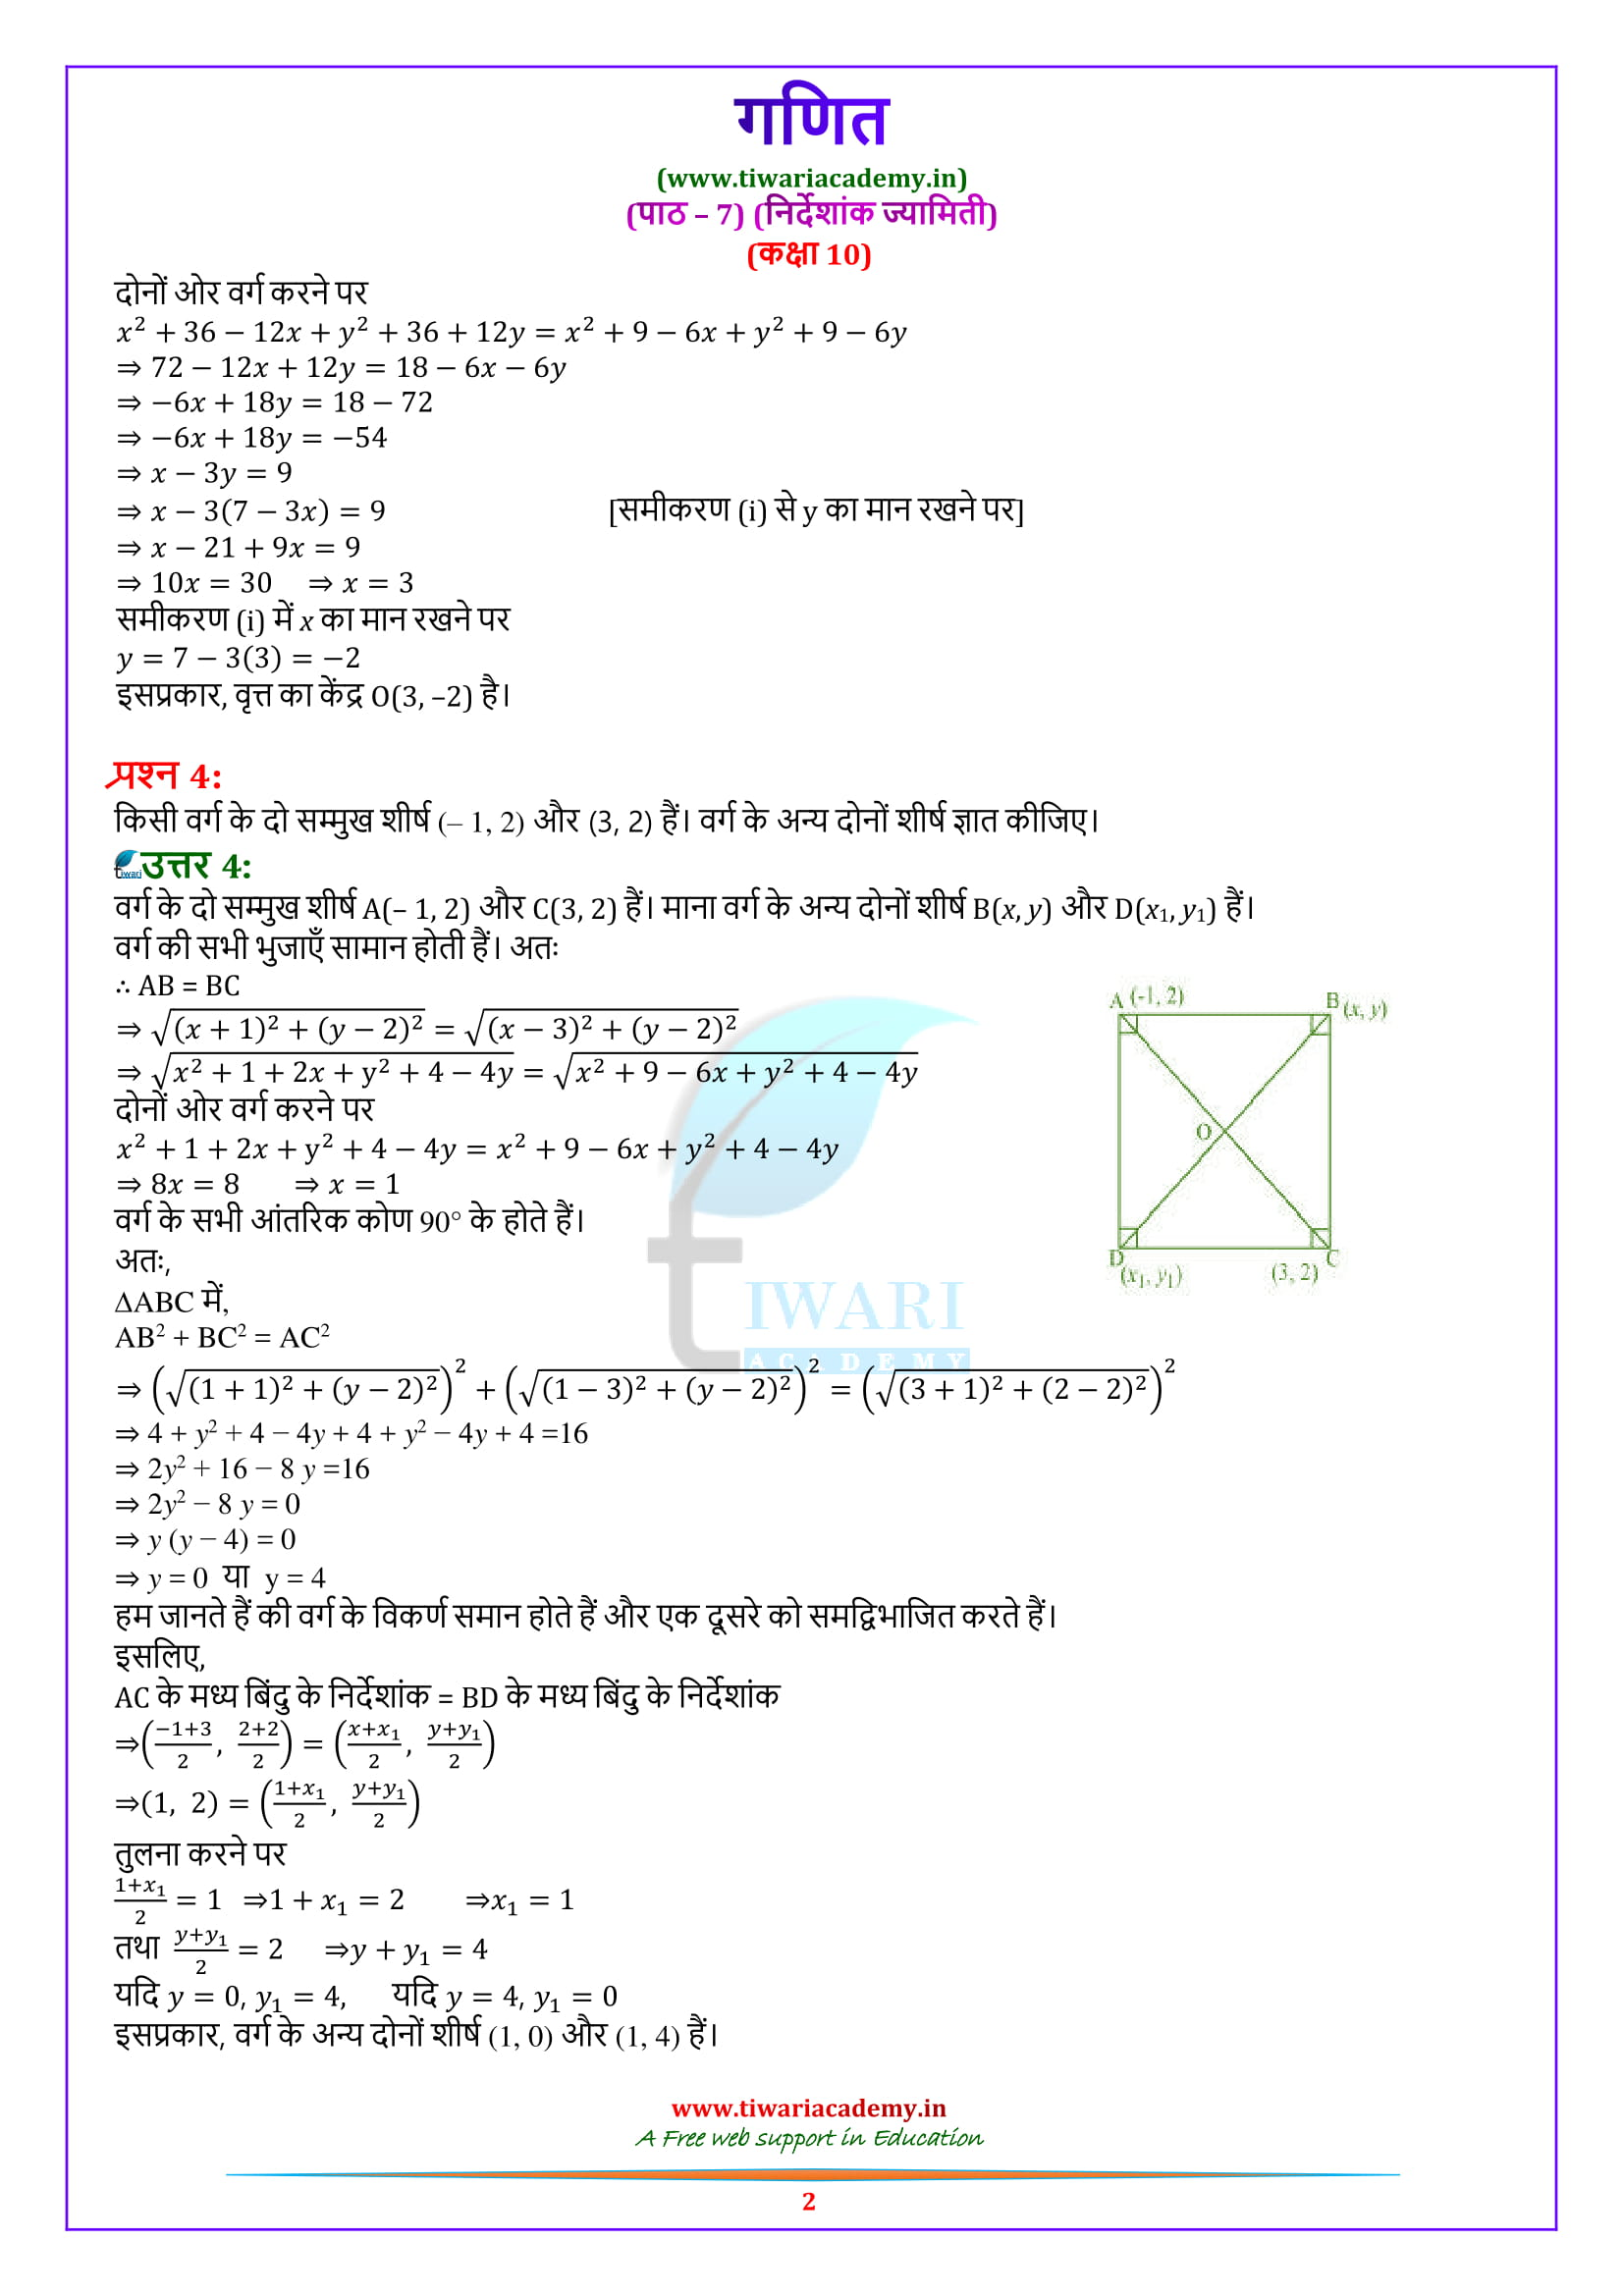 Class 10 Maths Exercise 7.4 Solutions all question answers